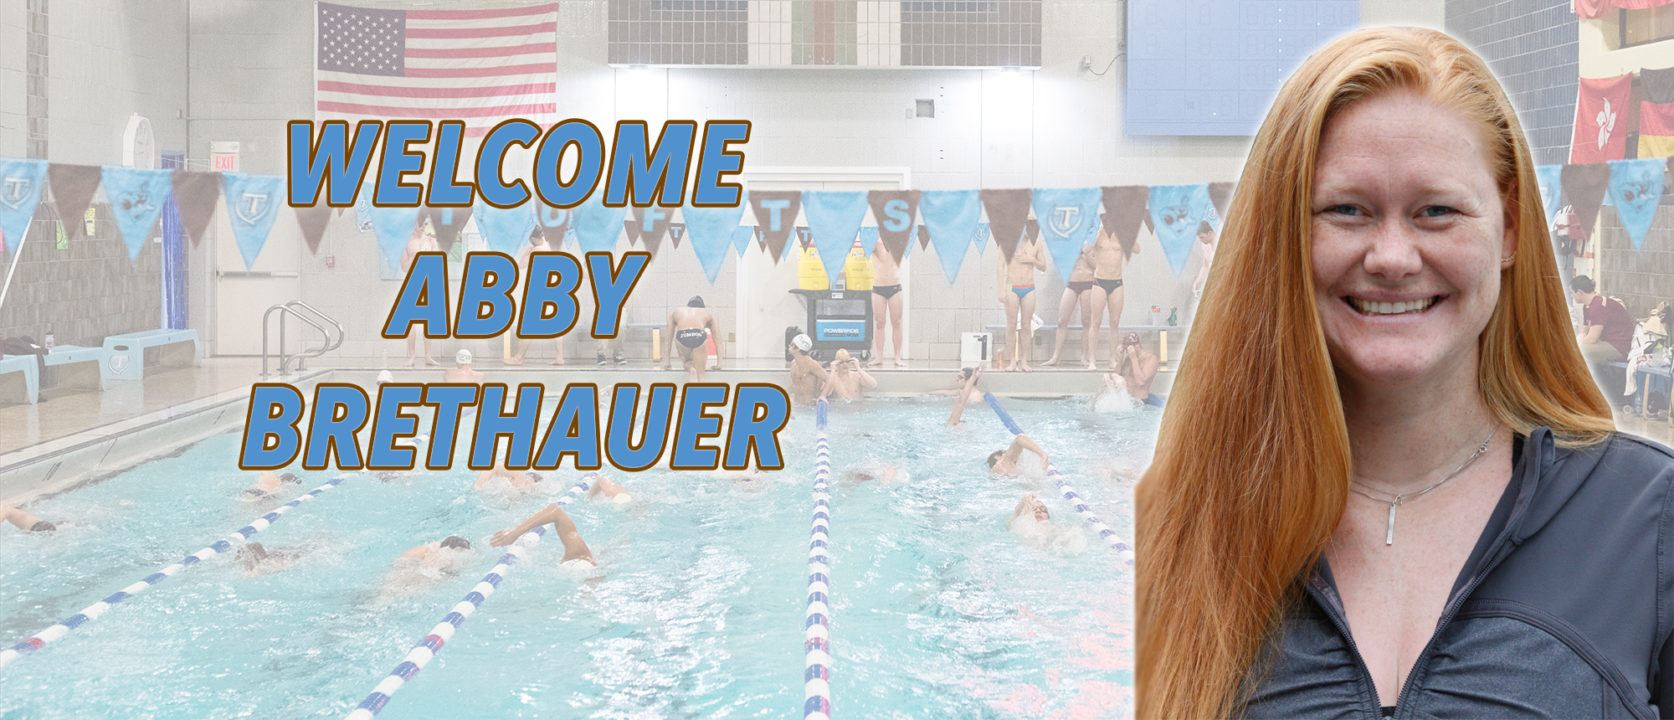 Tufts Hires Abby Brethauer as Associate Head Swimming Coach